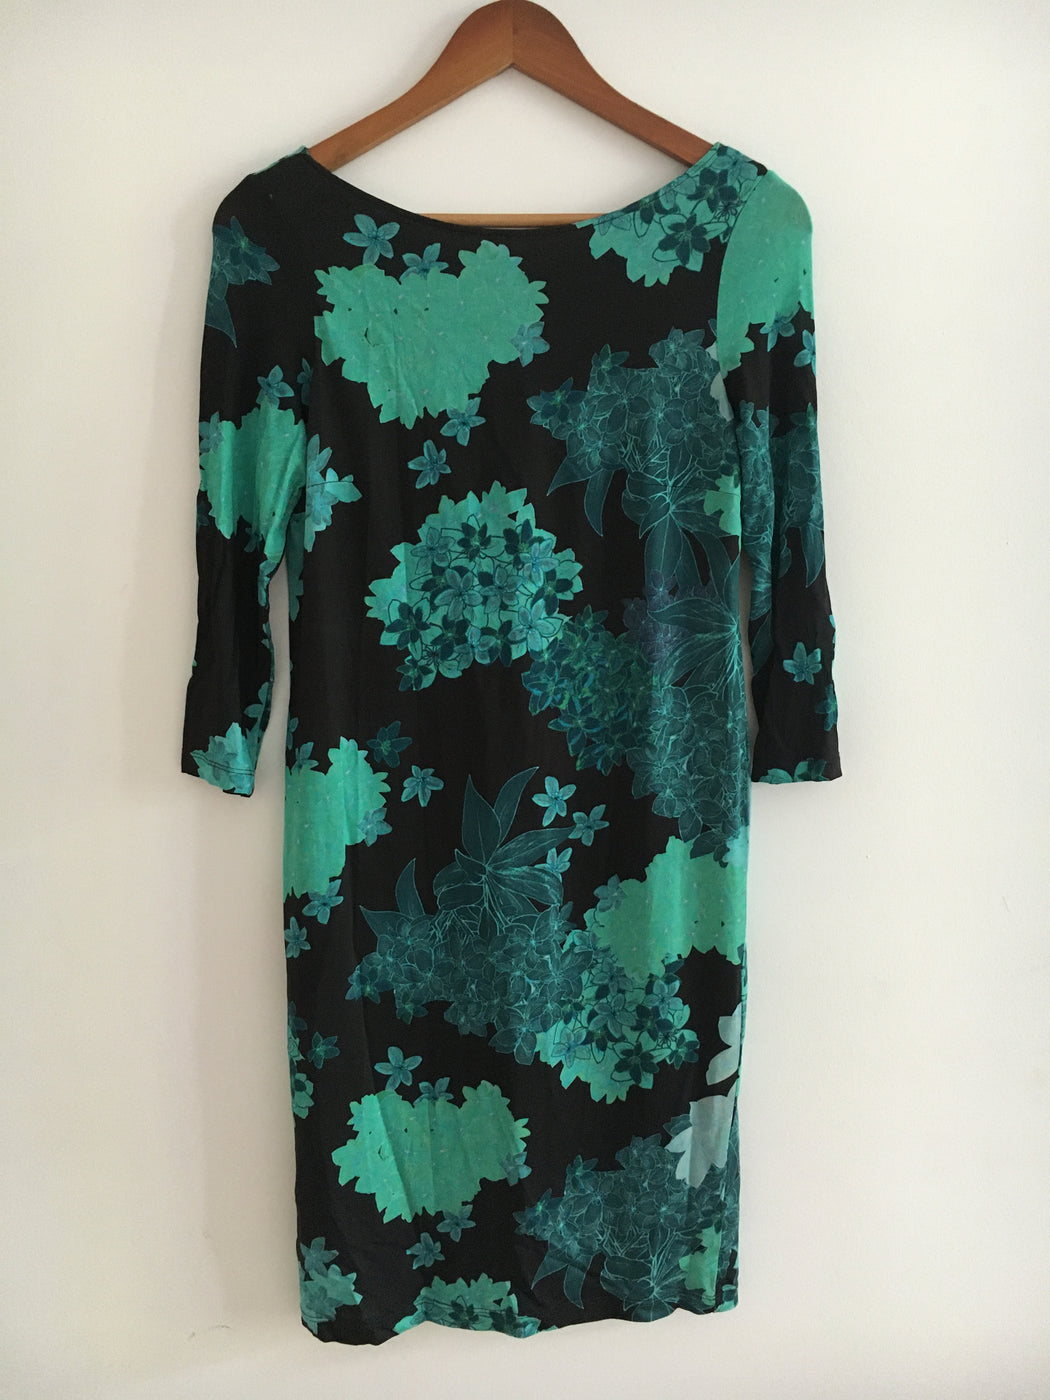 Black-Emerald Polyester / Rayon Vintage Cocktail Dress Open-backed